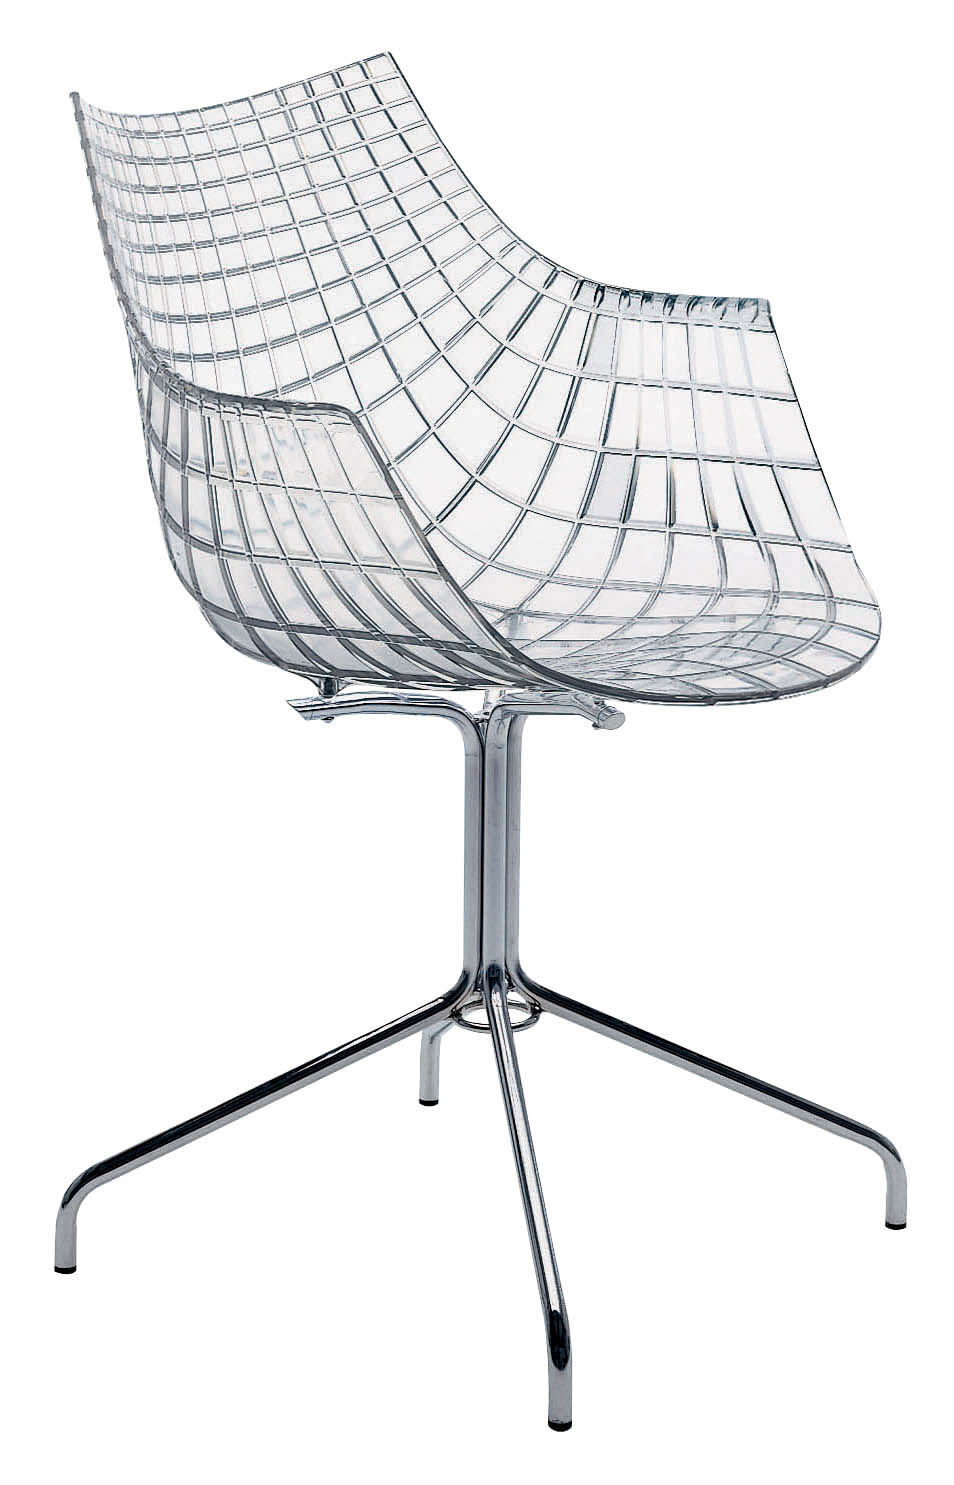 Furniture - Chairs - Meridiana Armchair - Transparent polycarbonate by Driade - Transparent - Chromed steel, Polycarbonate